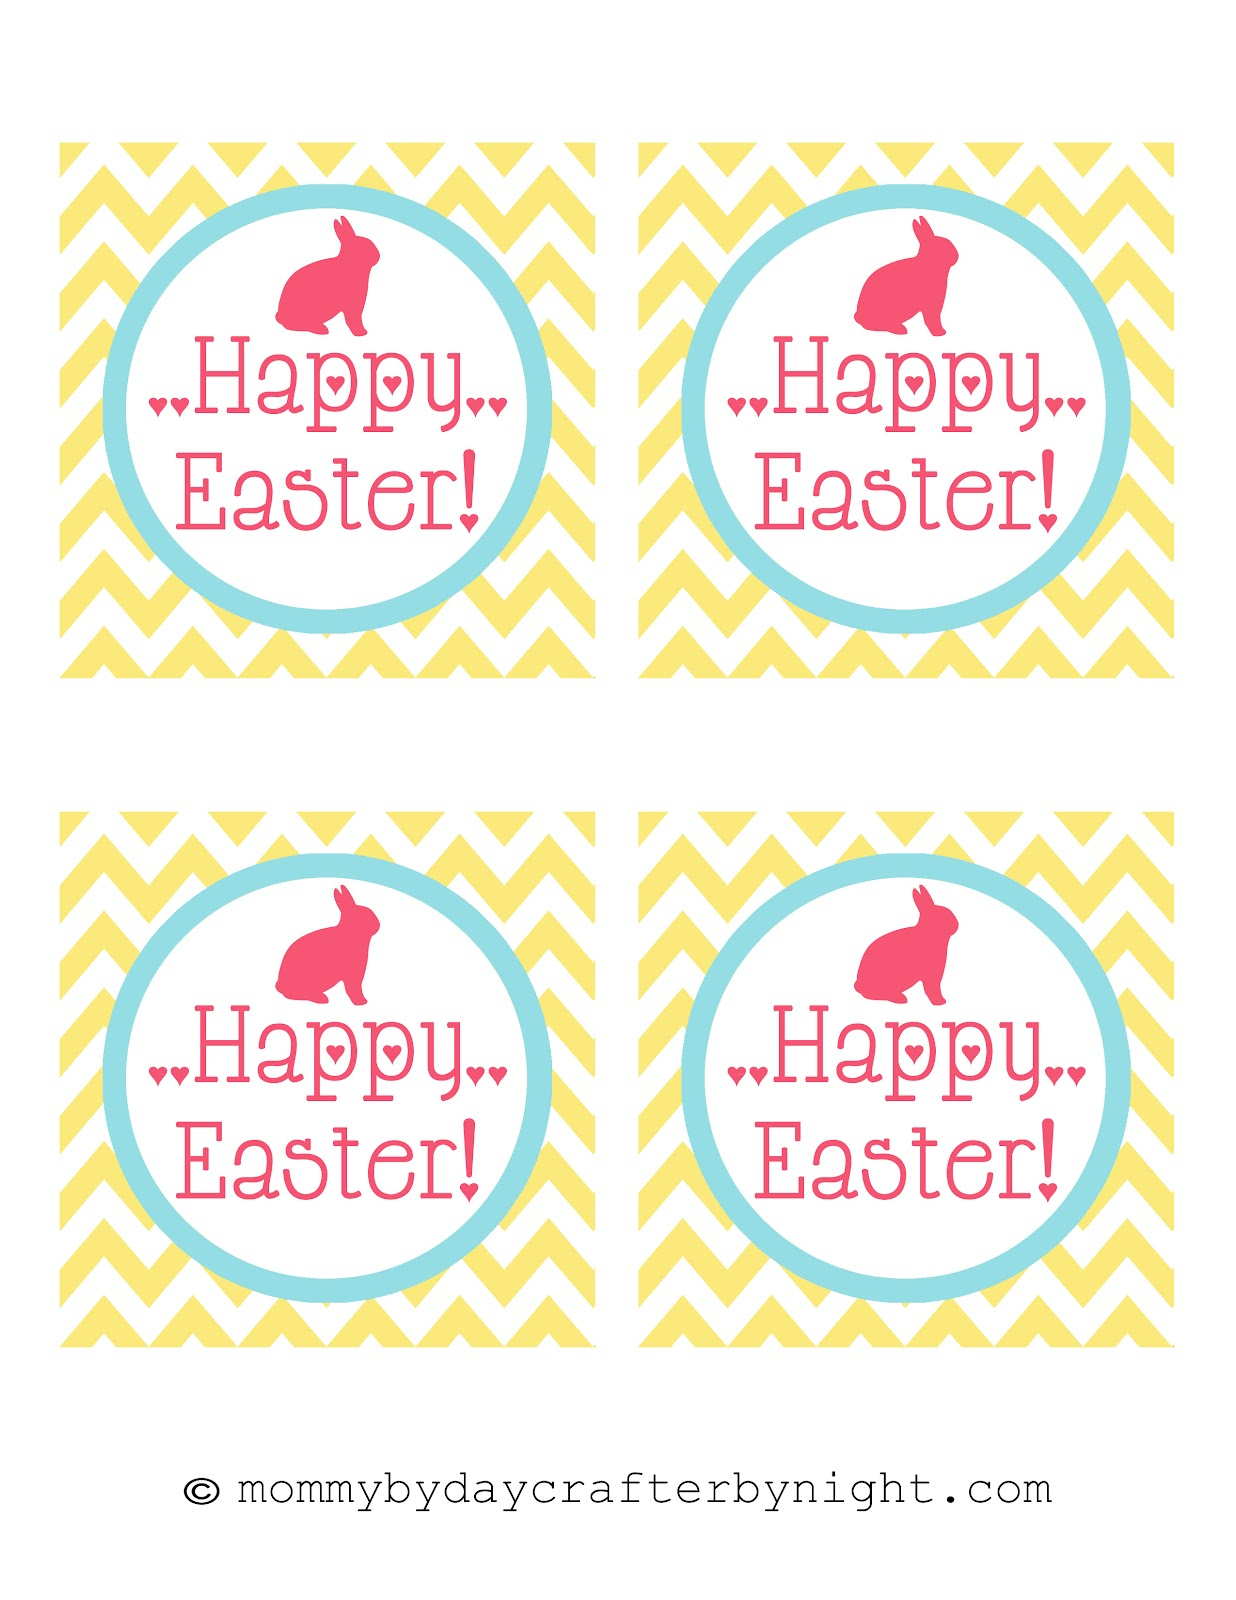 Free Printable Easter Tags – Hd Easter Images - Free Printable Easter Tags